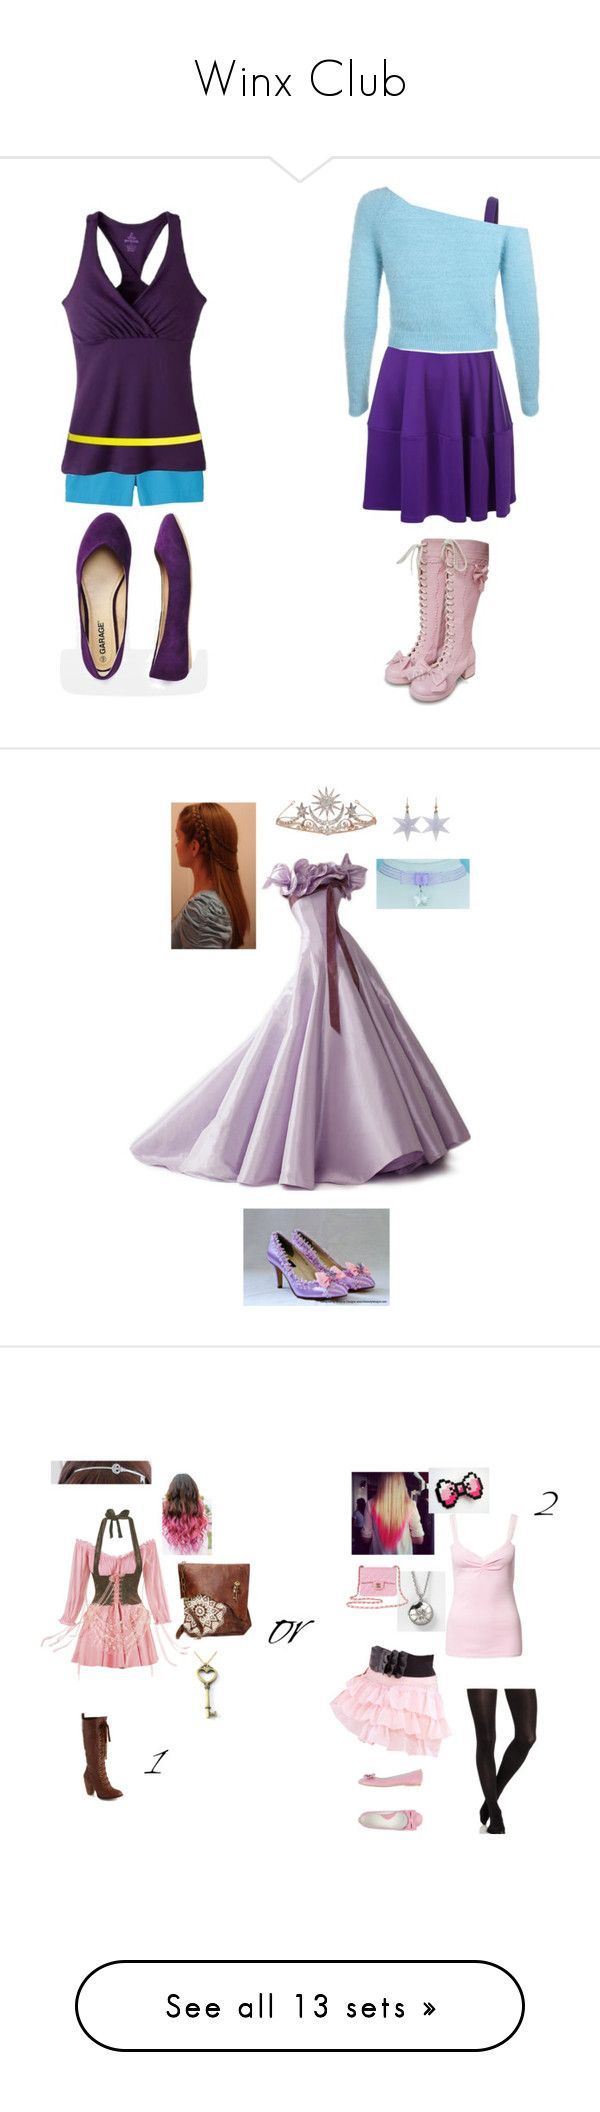 """""""Winx Club"""" by hello-alex106 ❤ liked on Polyvore featuring beauty, Uniqlo, prAna, ASOS, Retrò, Camilla and Marc, Miss Selfridge, Lucifer Vir Honestus, SHY SHY and NLY Trend"""